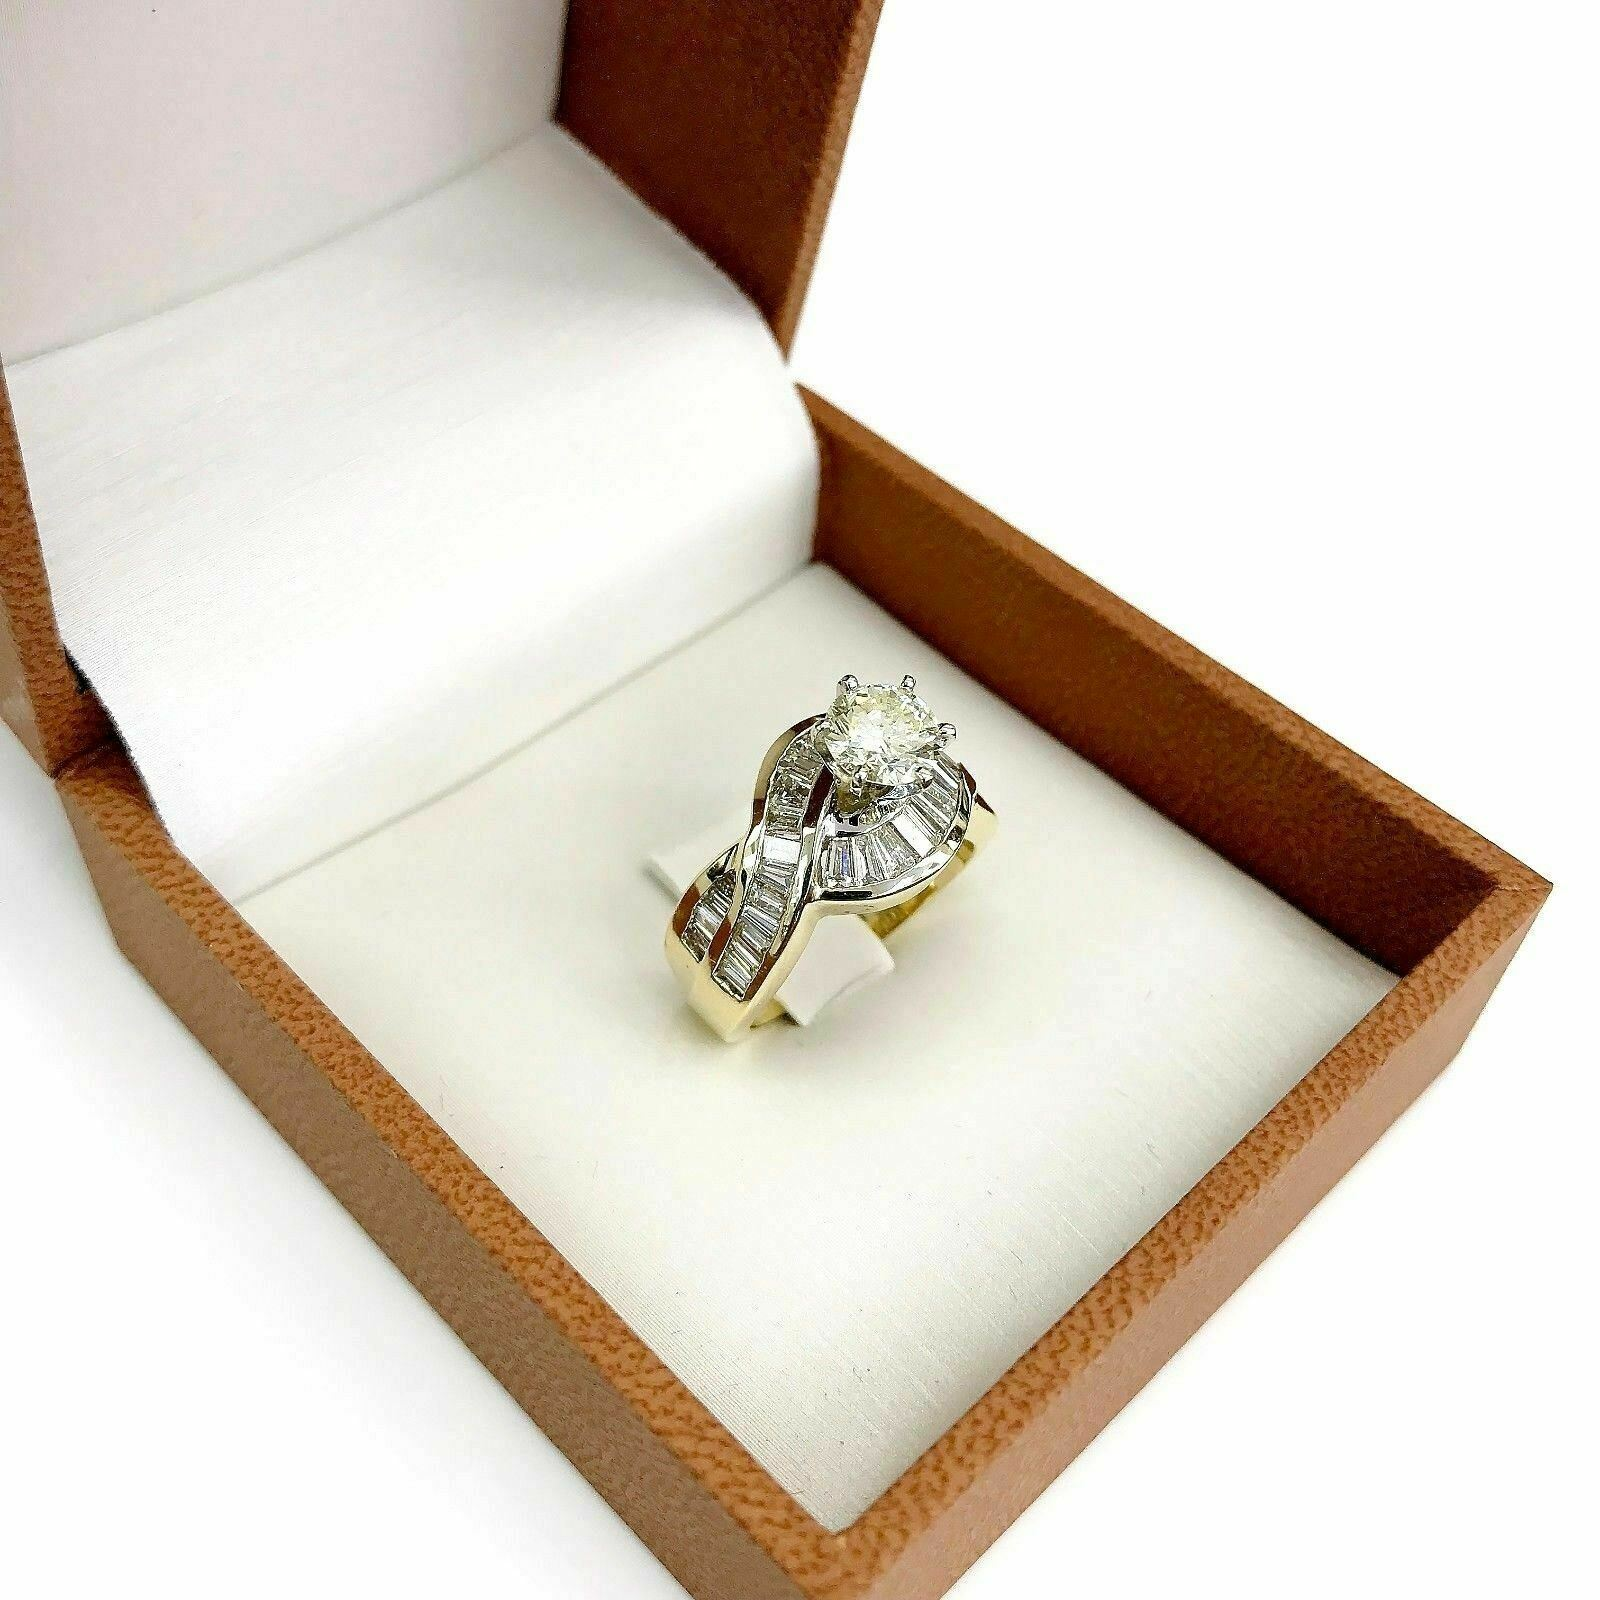 2.39 Carats t.w. Diamond Wedding/Engagement Ring 14K Gold 0.92 Carat Center